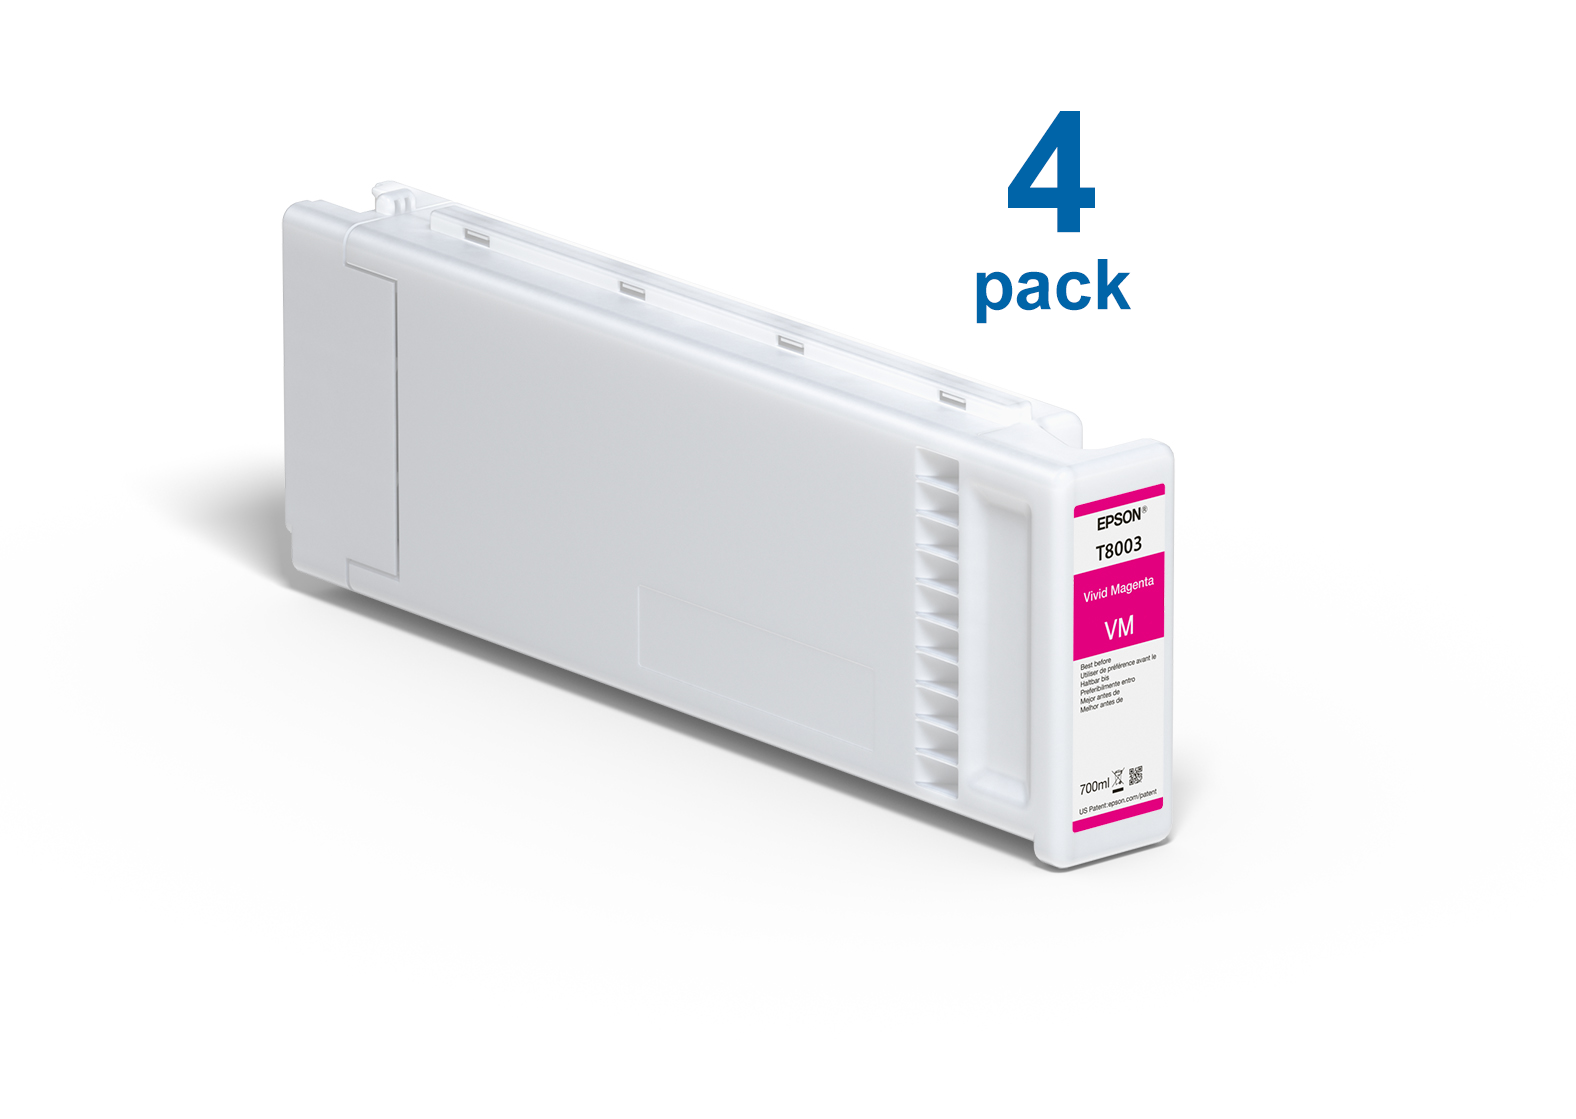 UltraChrome Pro Vivid Magenta 700ml Ink (4 Pack) for the Epson P10000 & P20000